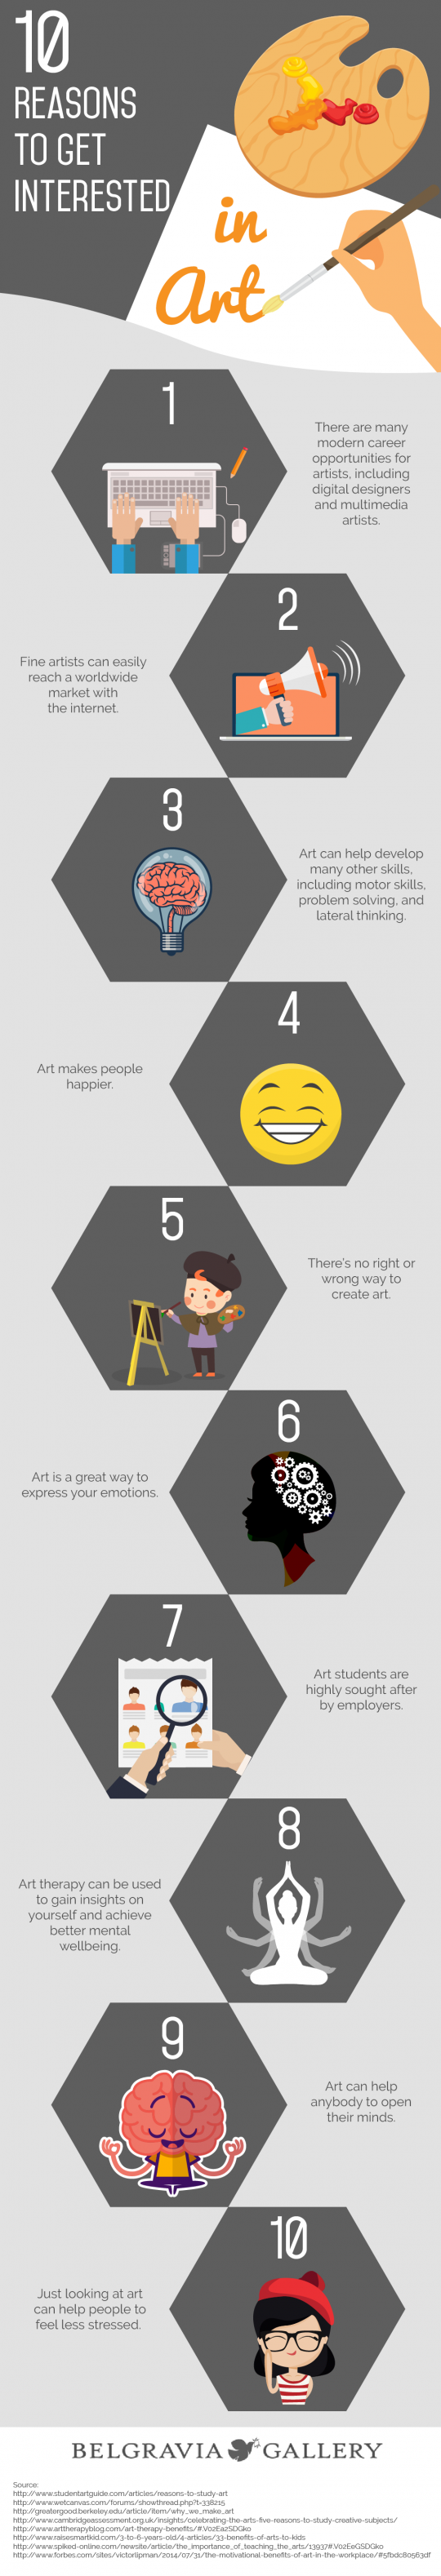 10 Reasons to get interested in Art